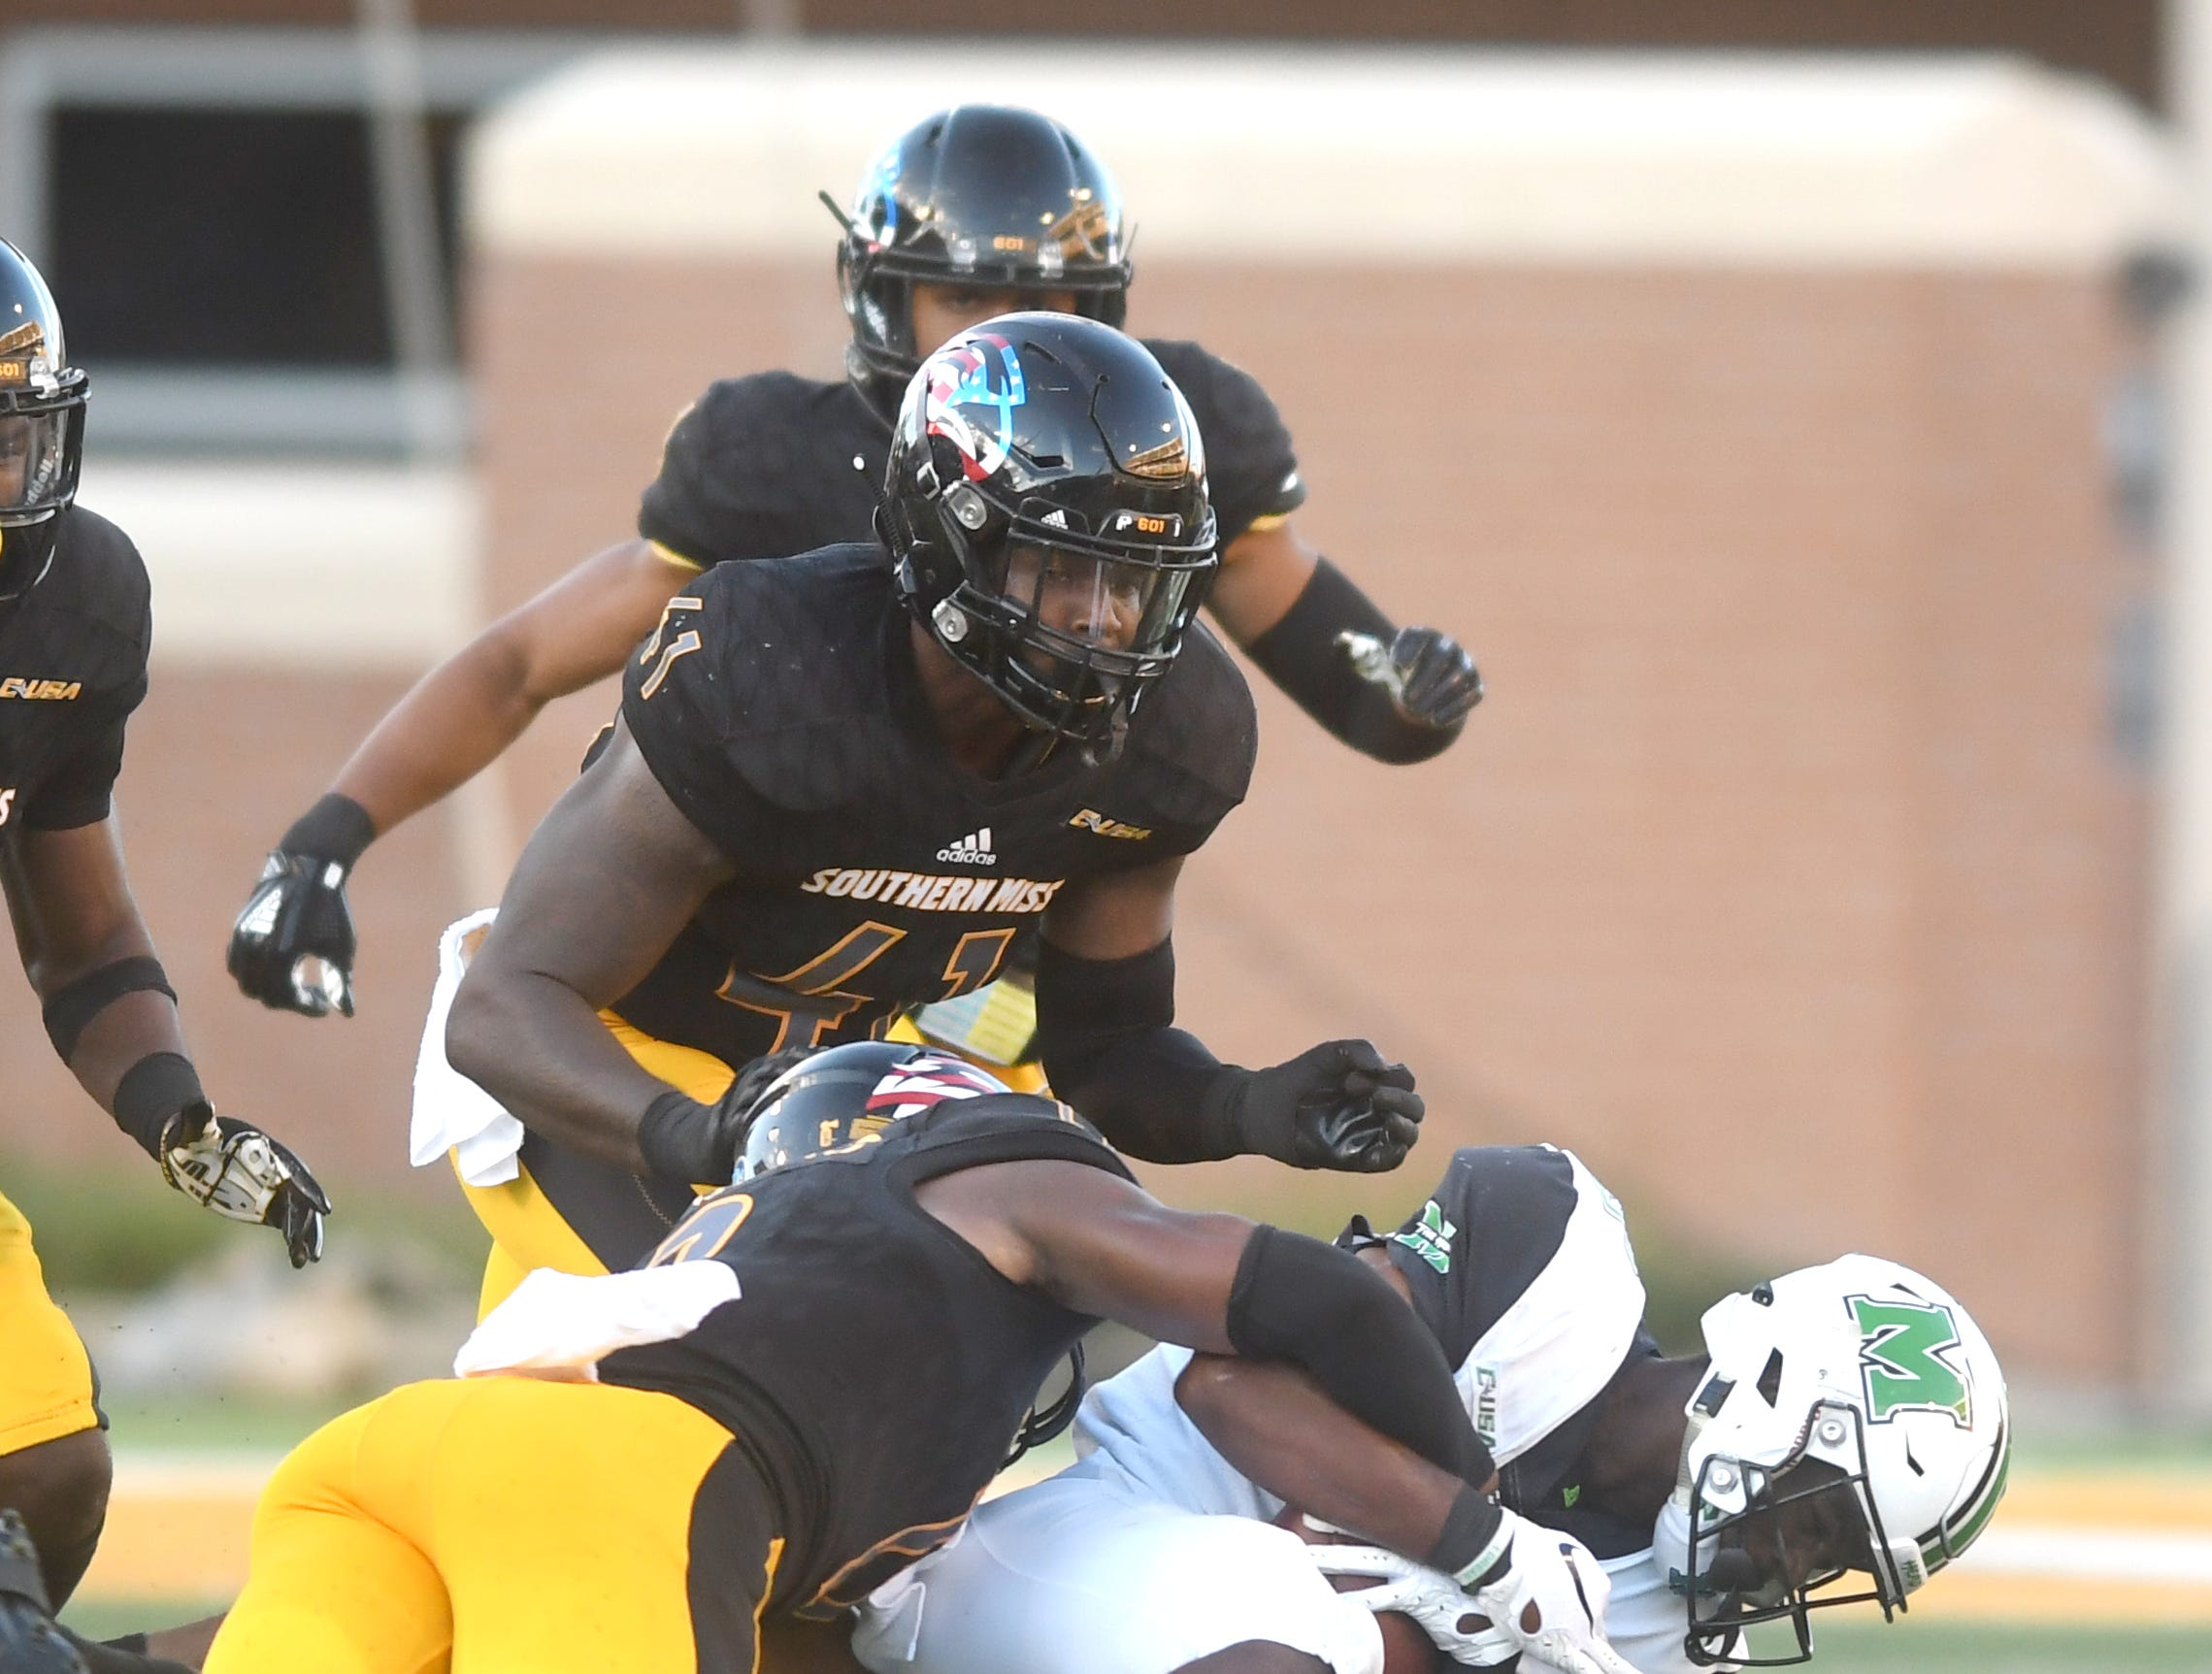 The Southern Miss defense makes a stop in a game against Marshall at M.M. Roberts Stadium on Saturday, November 3, 2018.